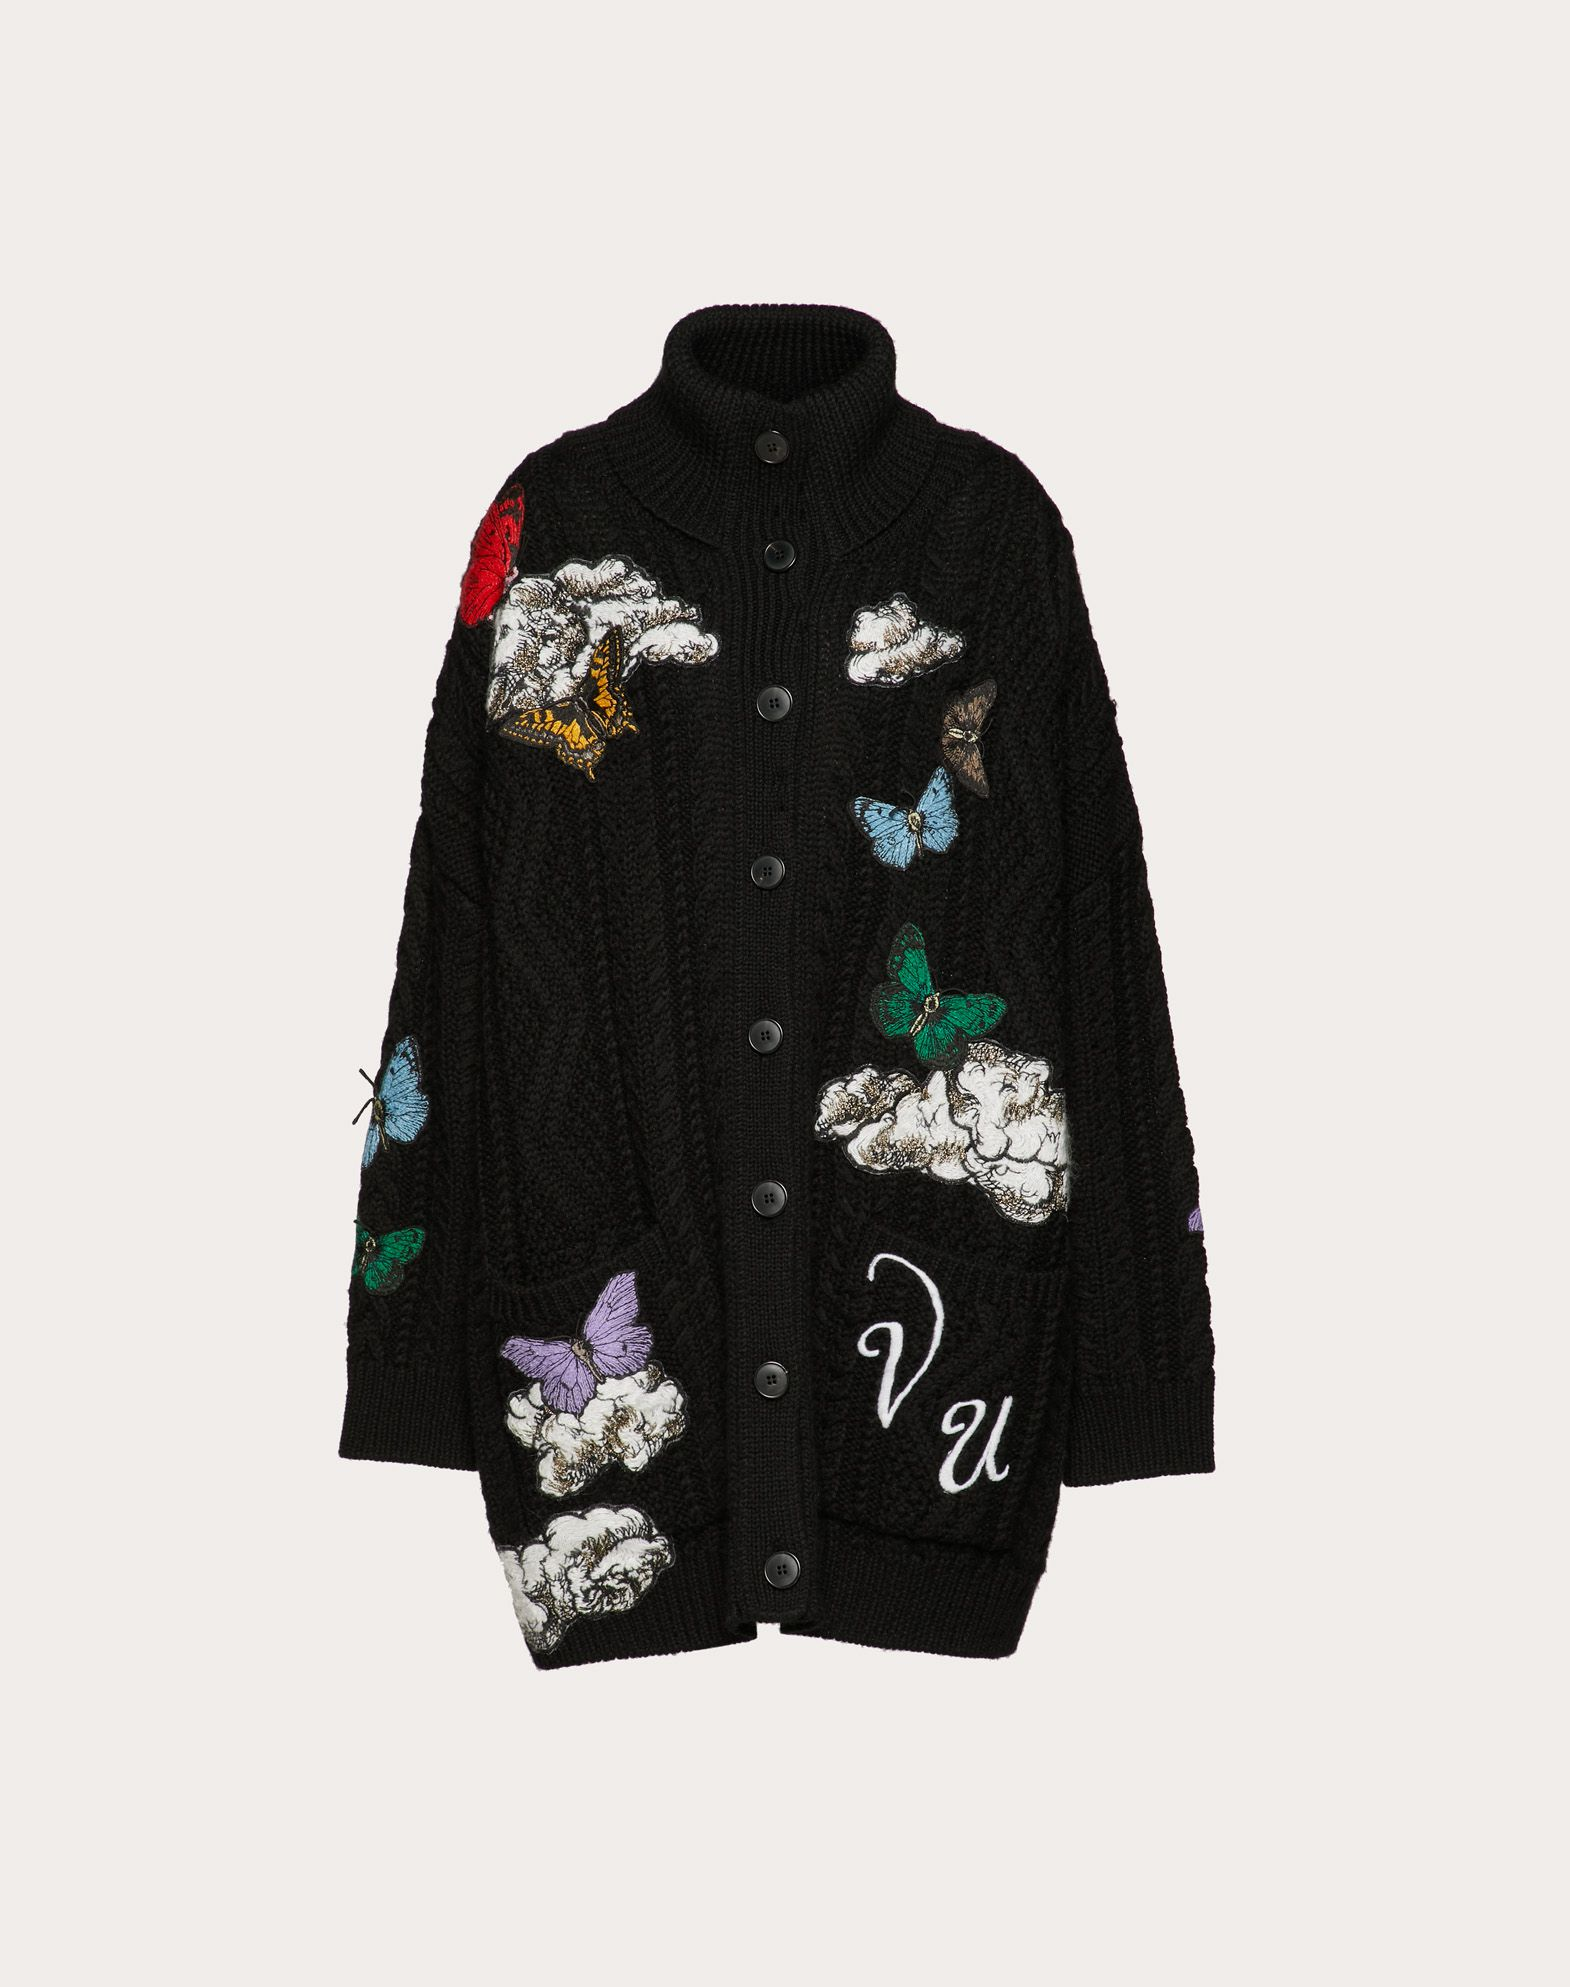 Undercover Embroidered Wool Cardigan